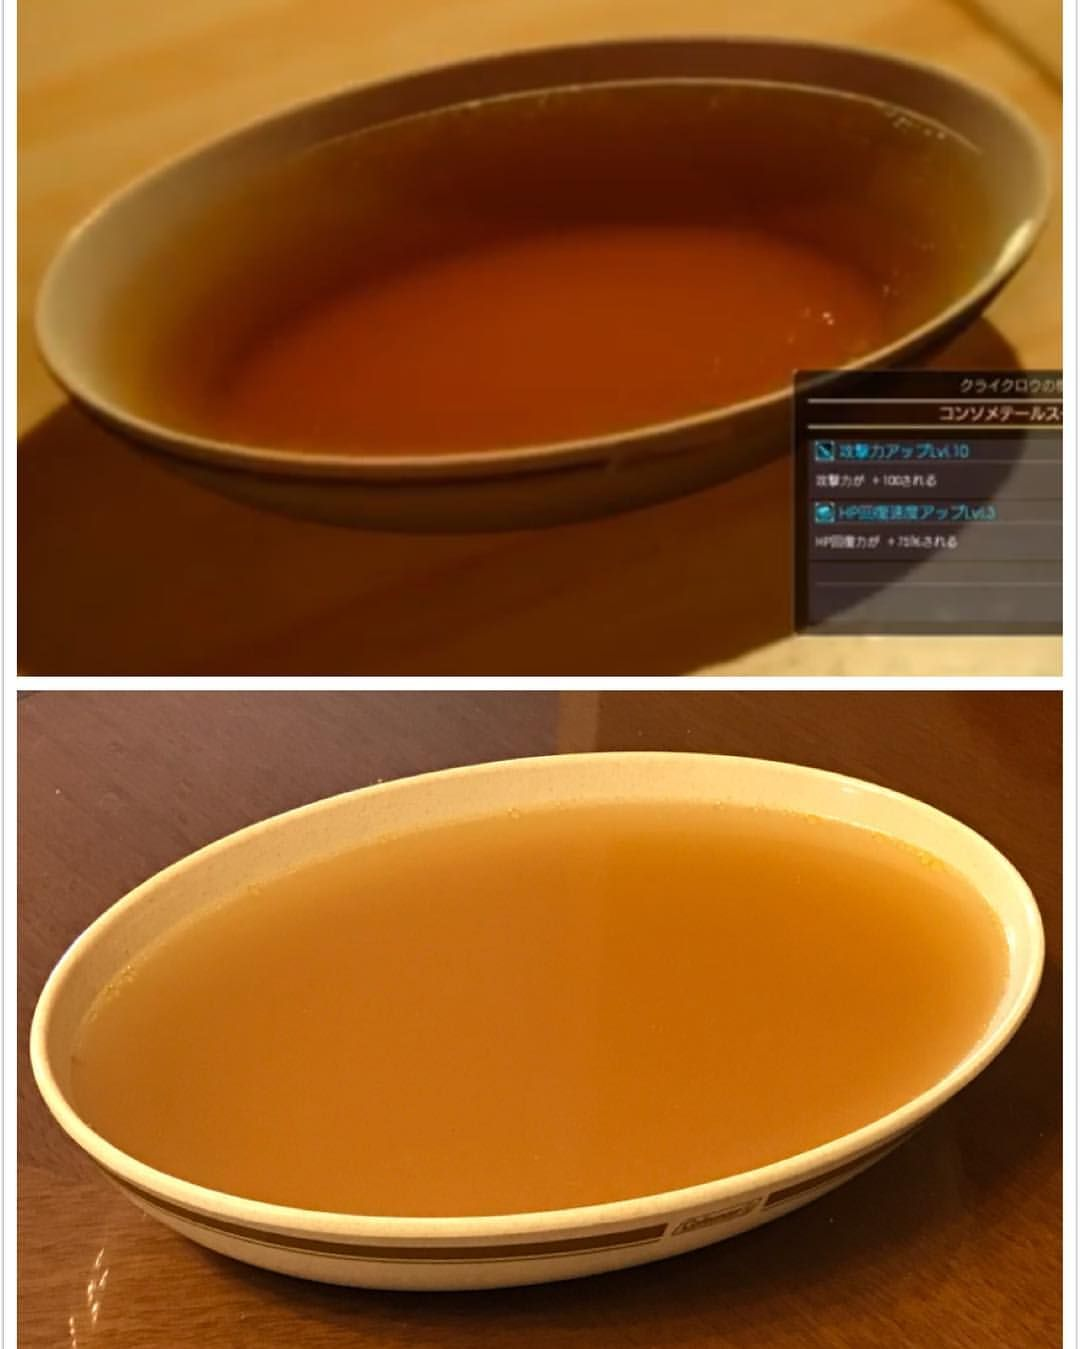 Ffxv cooking recipe quillhorn soup from honey toast tumblr ffxv cooking recipe quillhorn soup from honey toast tumblr forumfinder Images